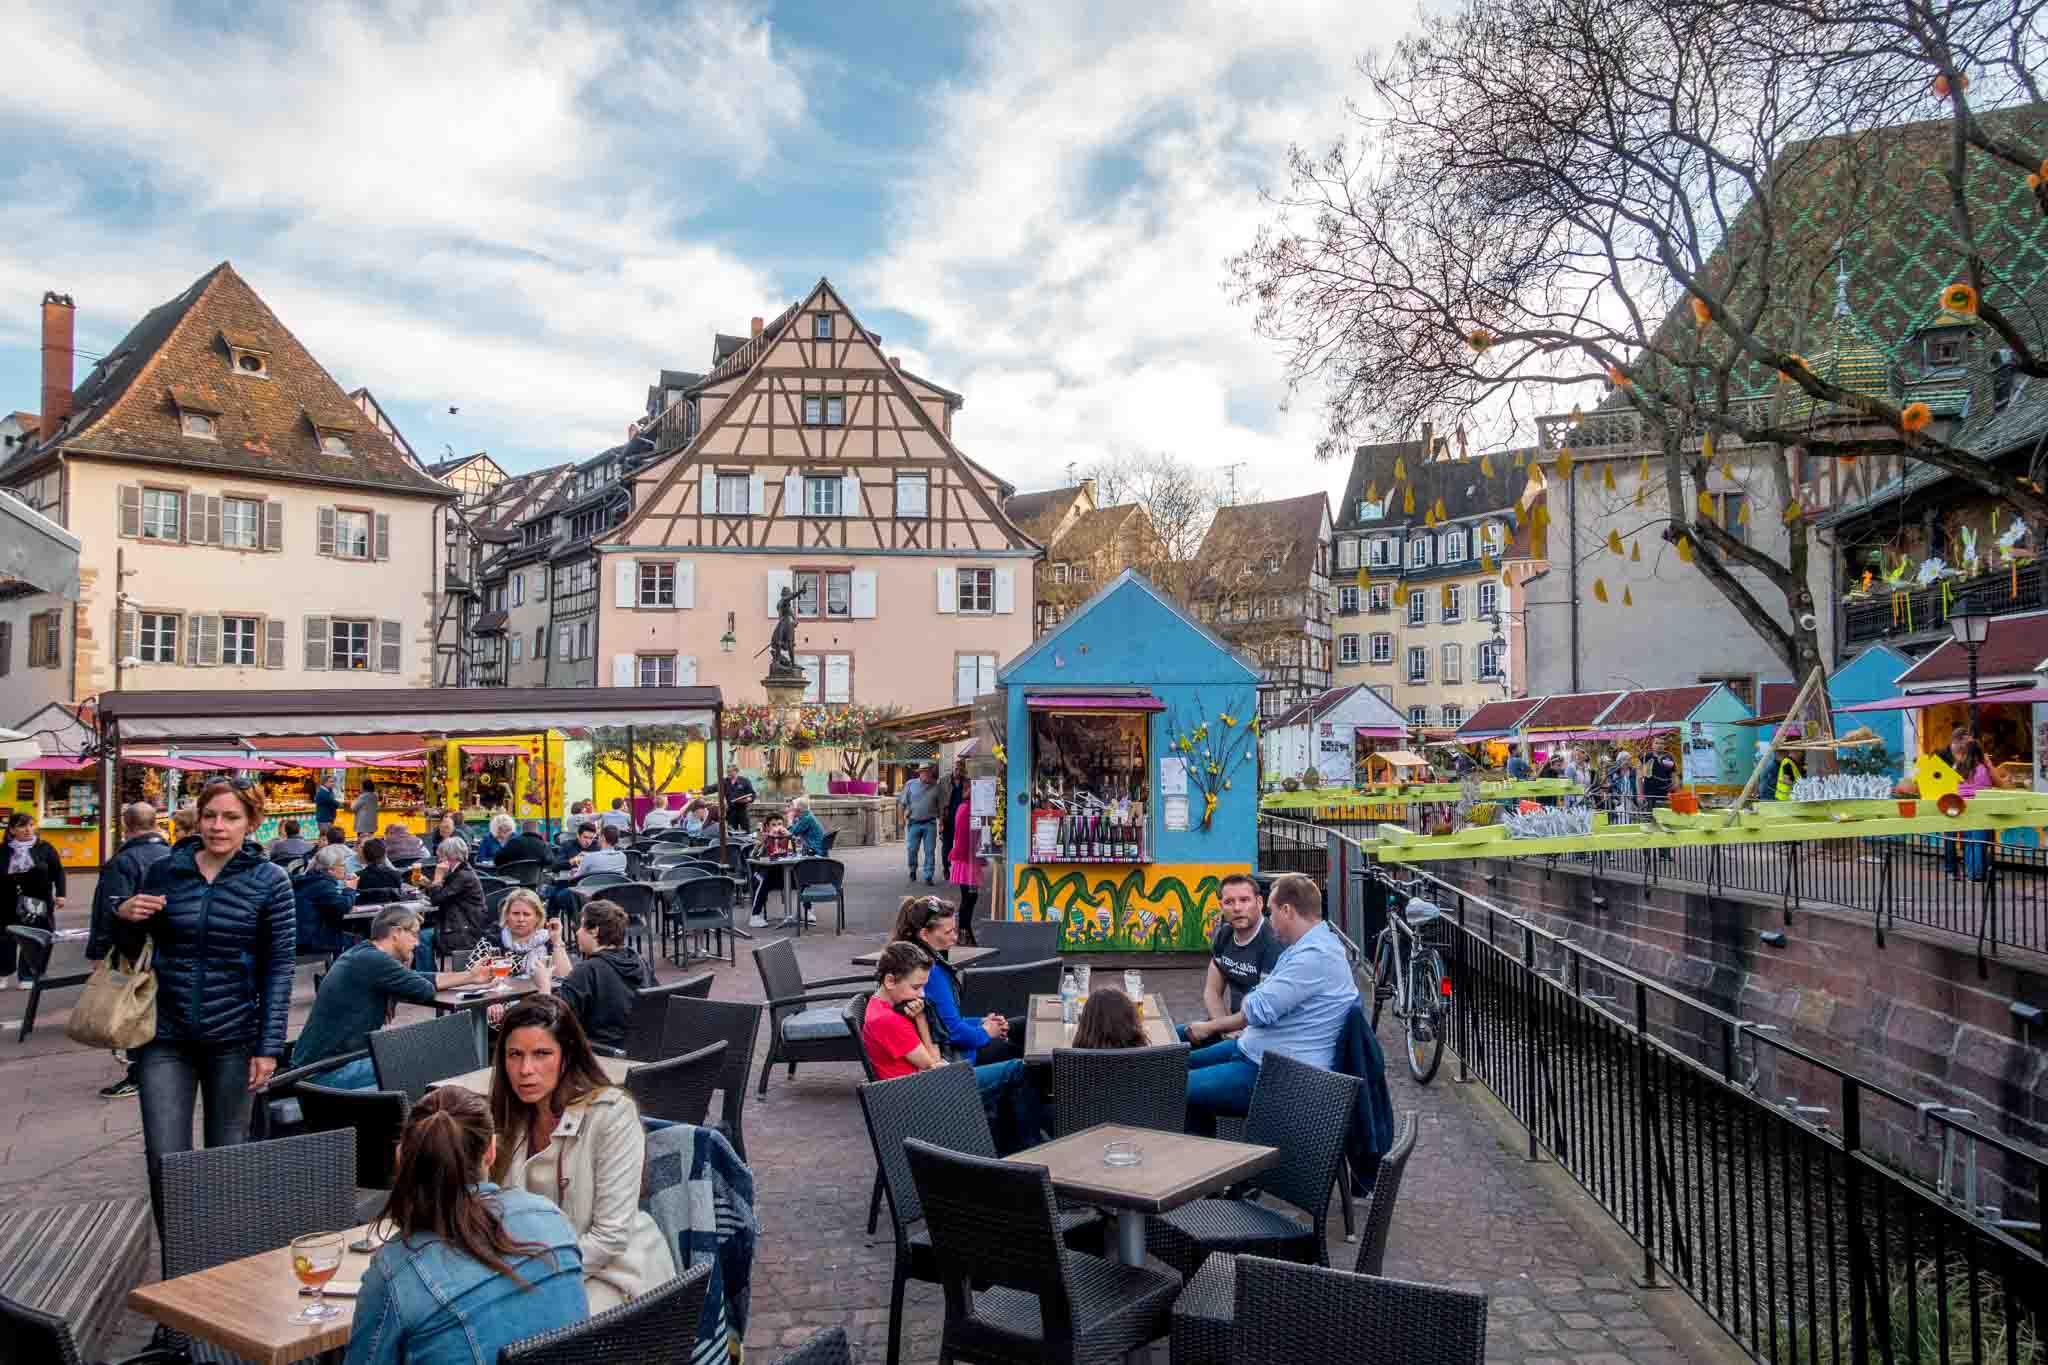 People having drinks outdoors with a spring market in the background